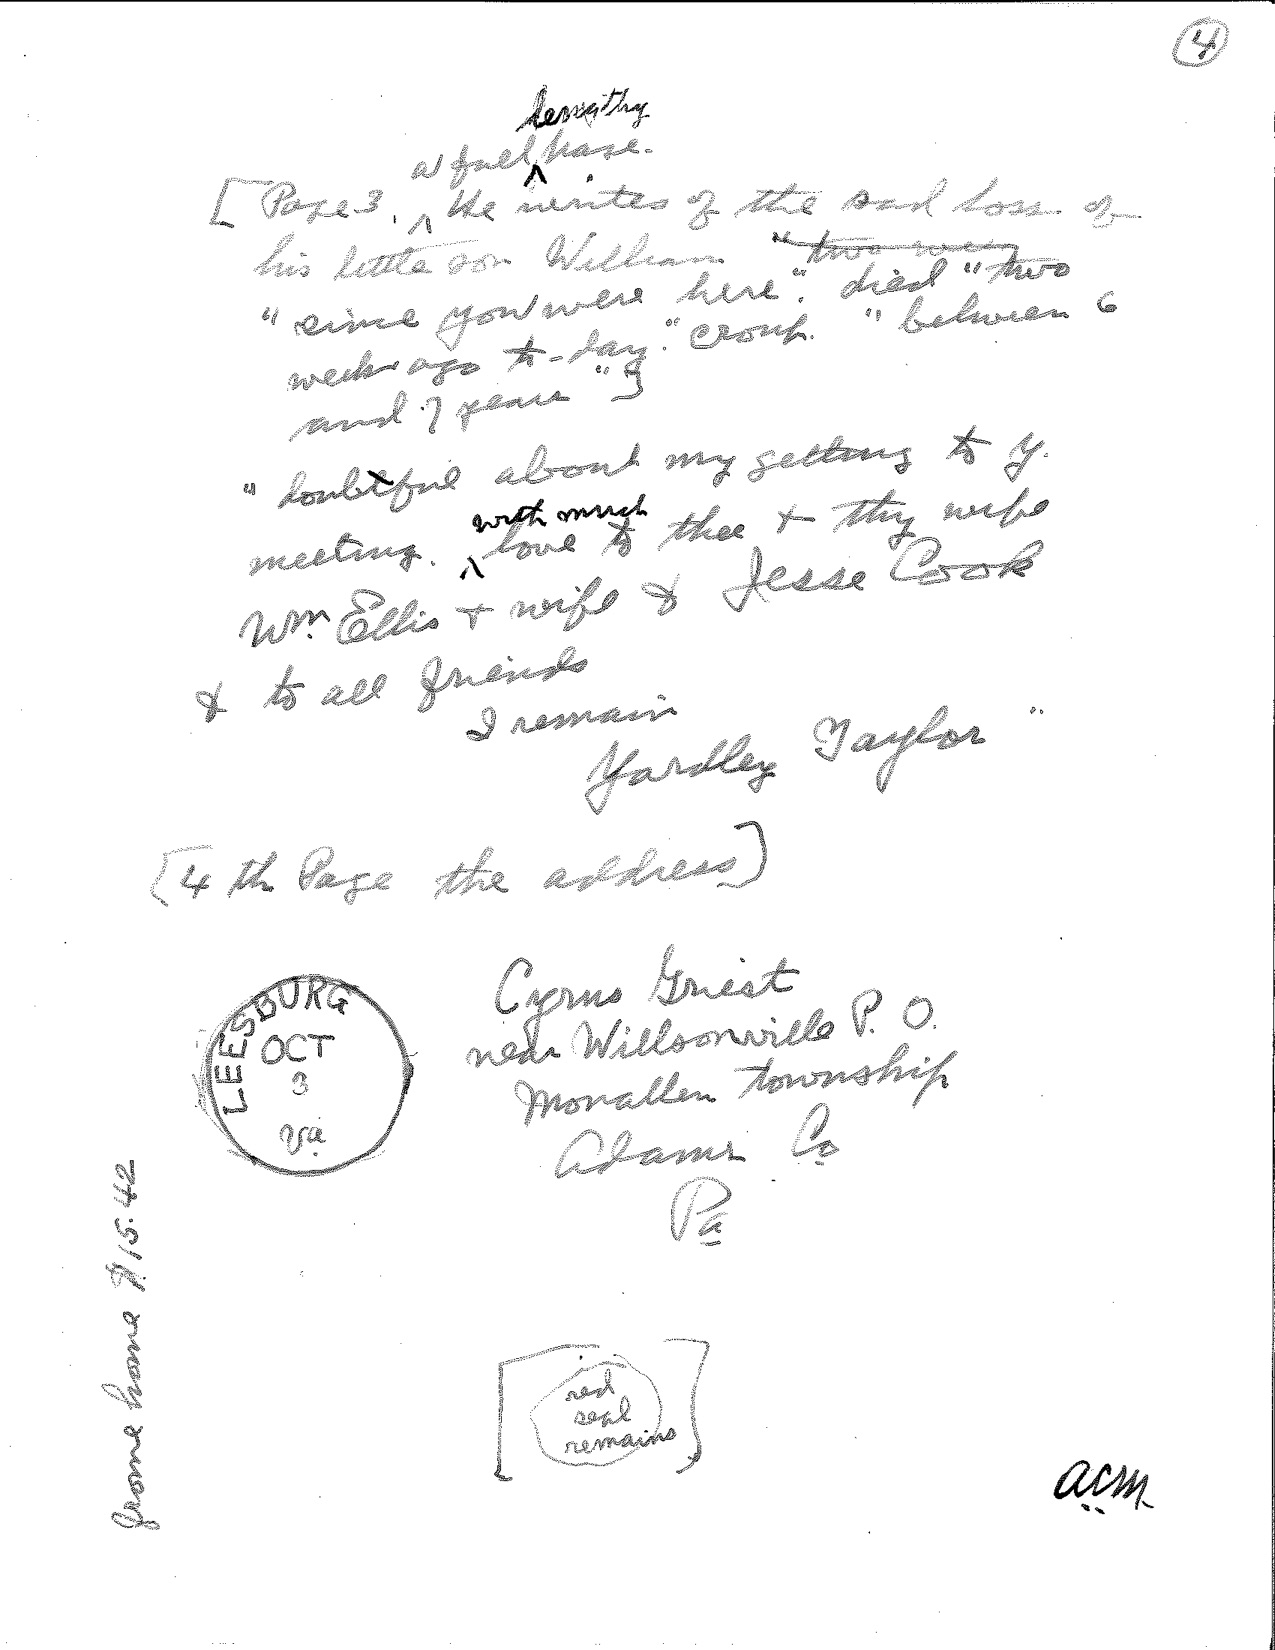 Yardley Taylor letter to Cyrus Greist page 4